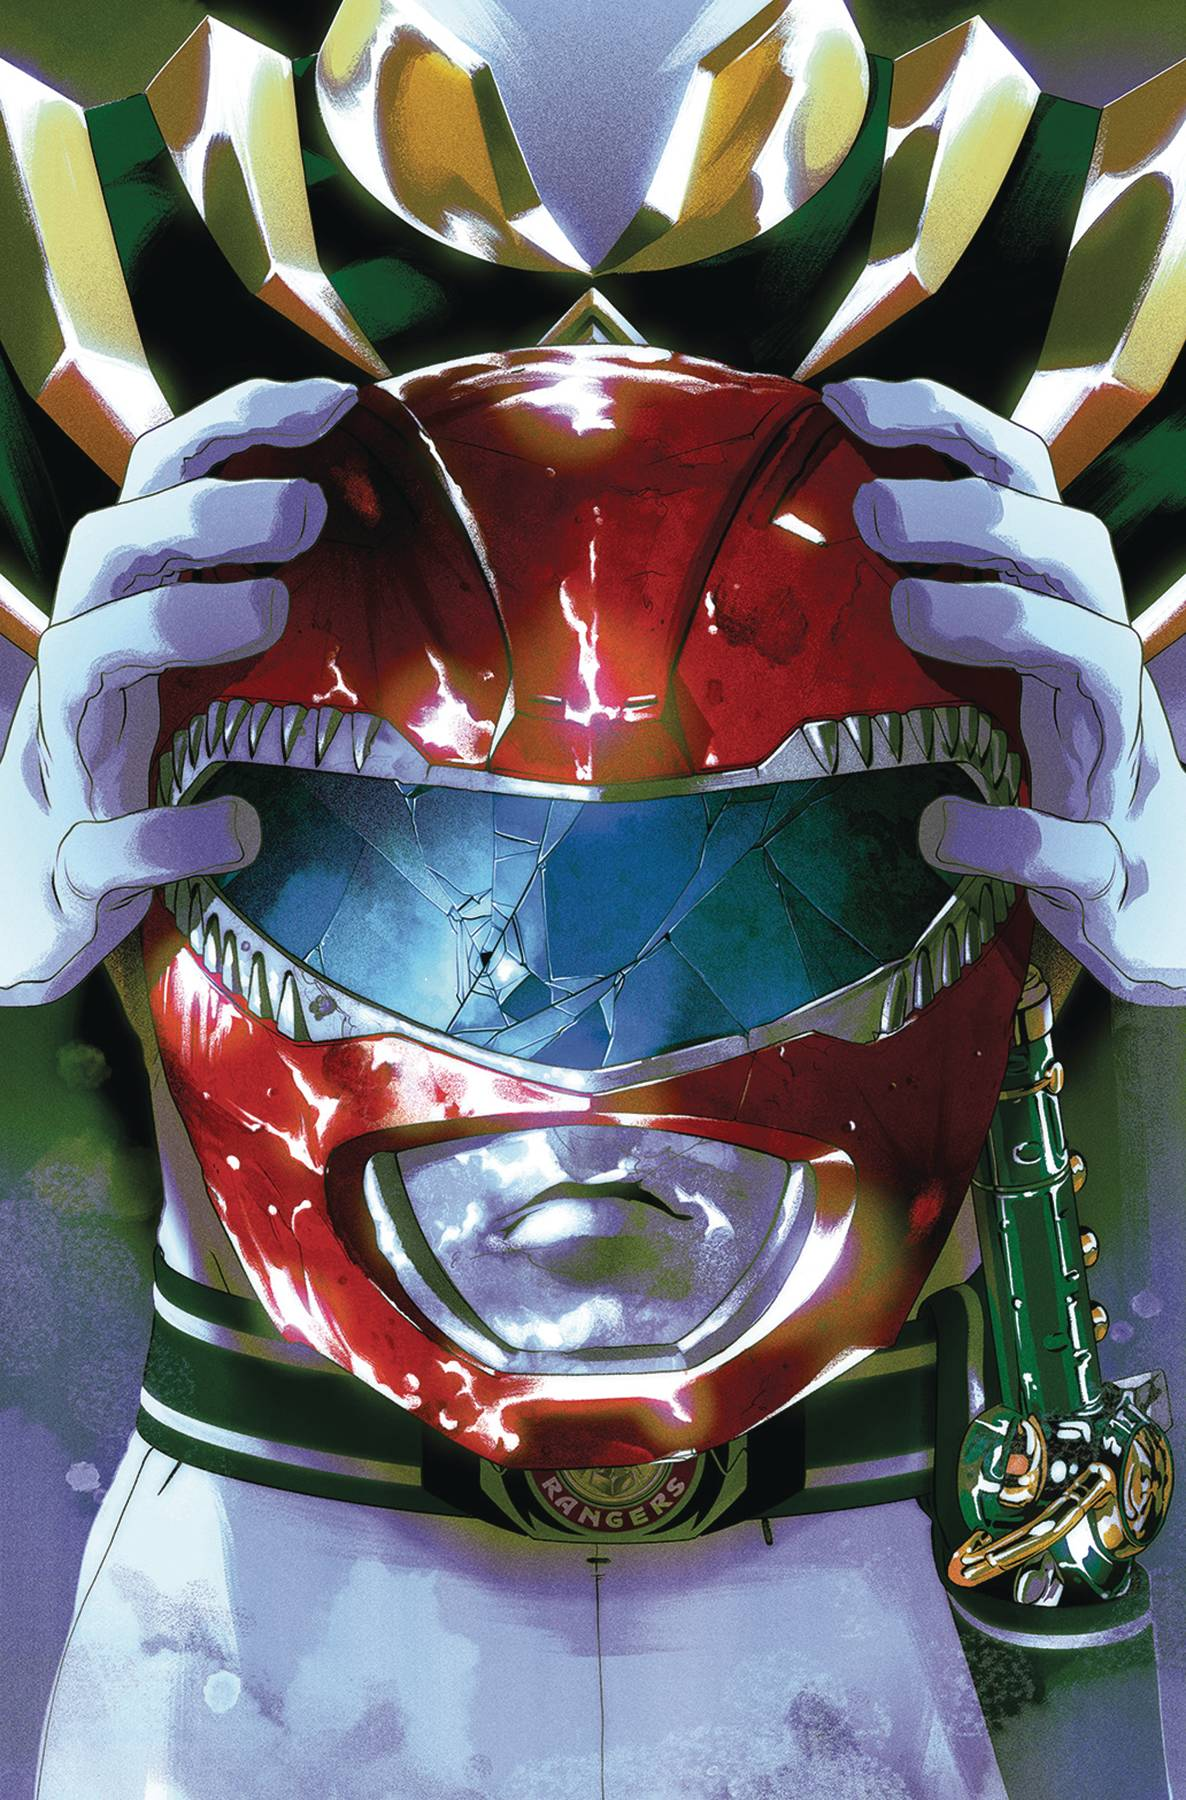 MIGHTY MORPHIN POWER RANGERS #25 POLYBAG MIX